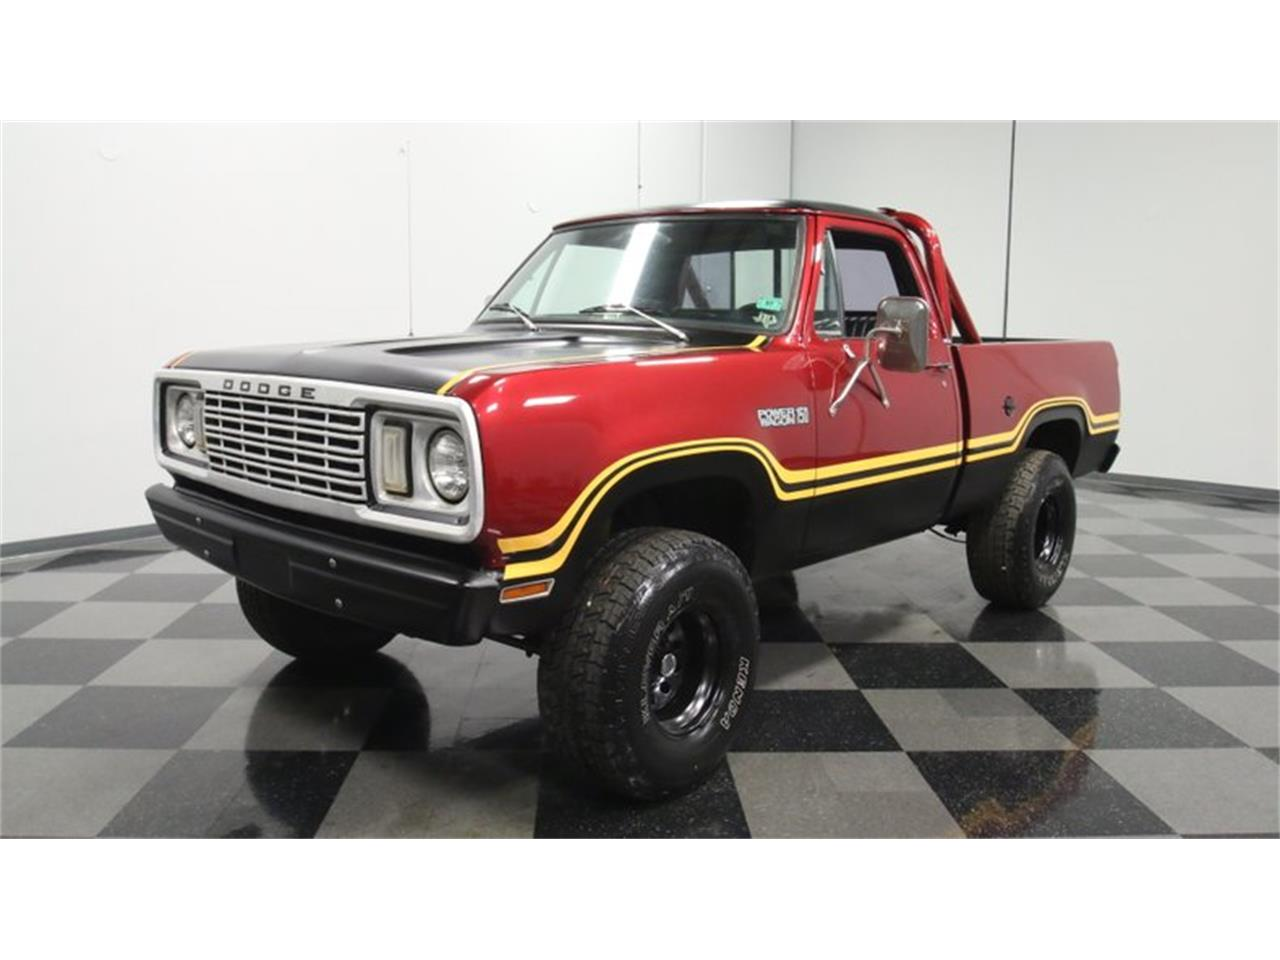 1978 Dodge Power Wagon for sale in Lithia Springs, GA – photo 21